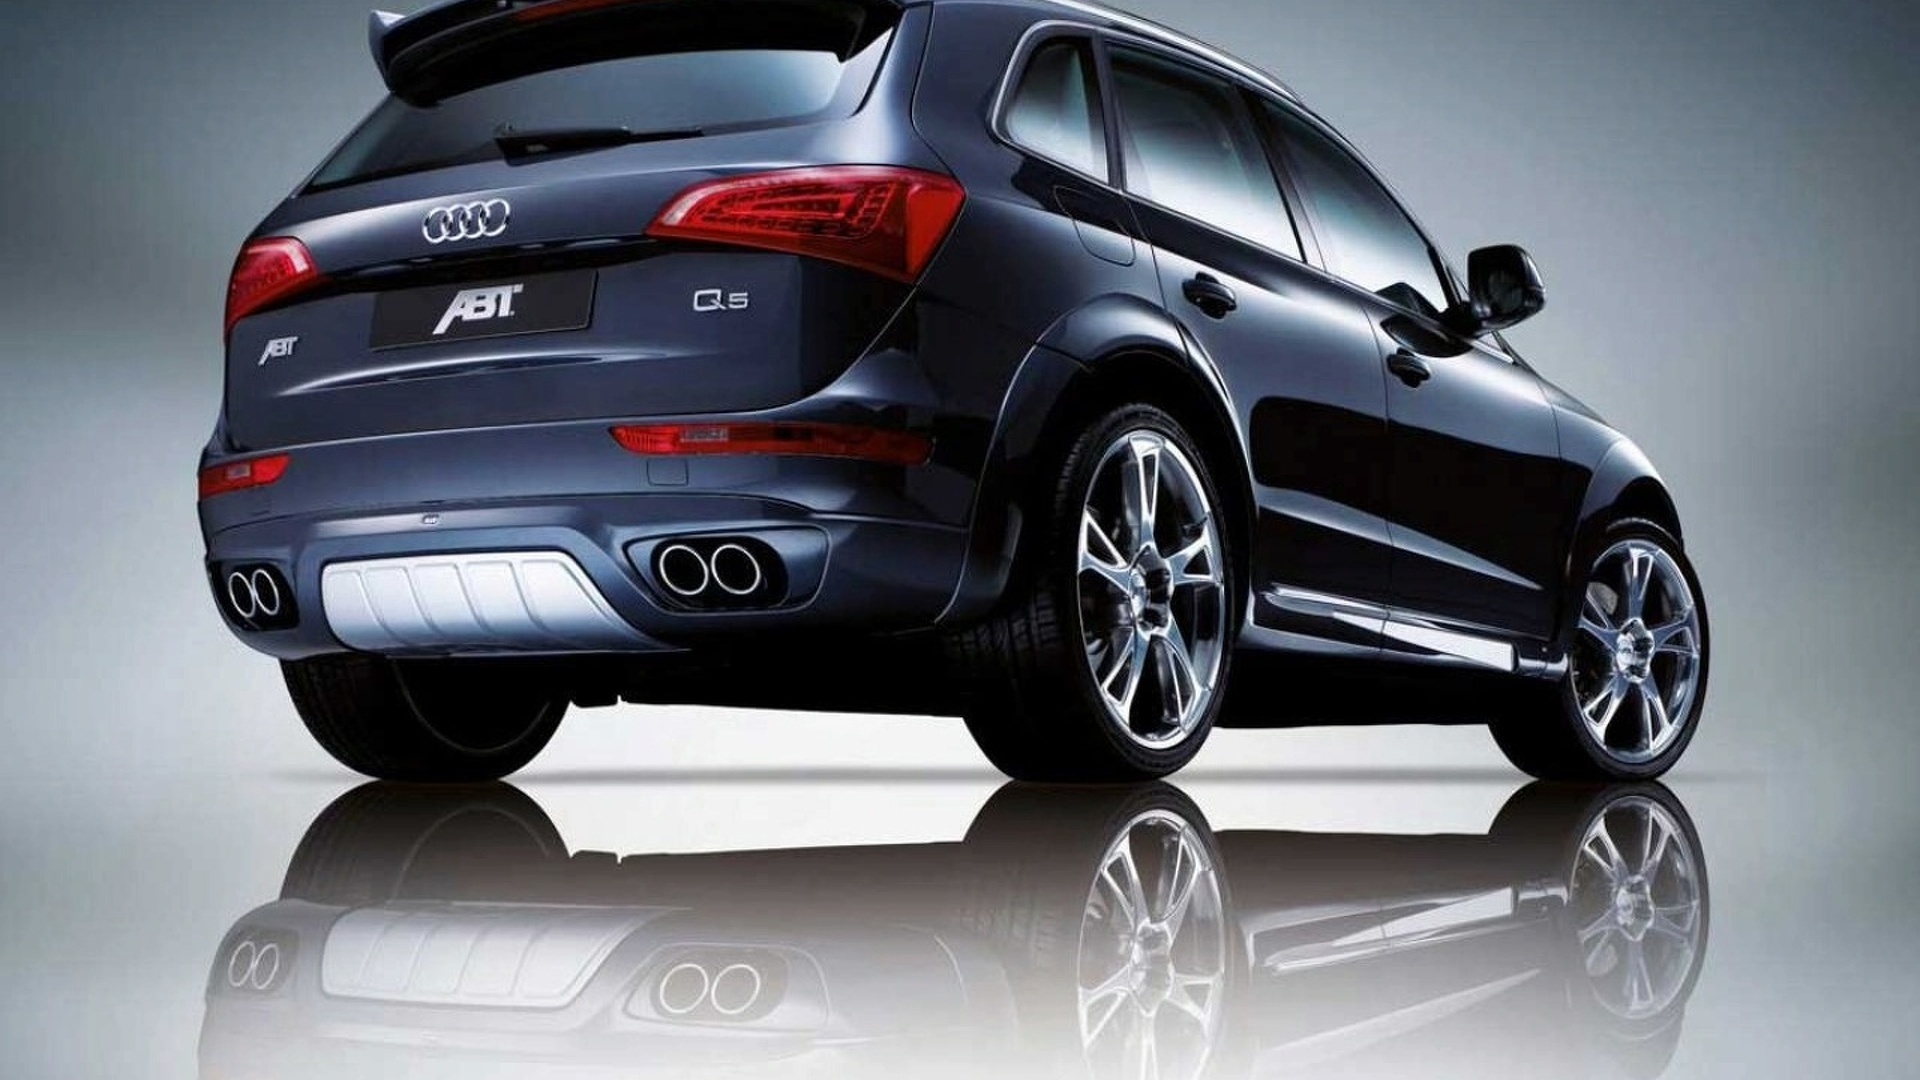 Abt Q5 to Receive Power Upgrade to 275hp